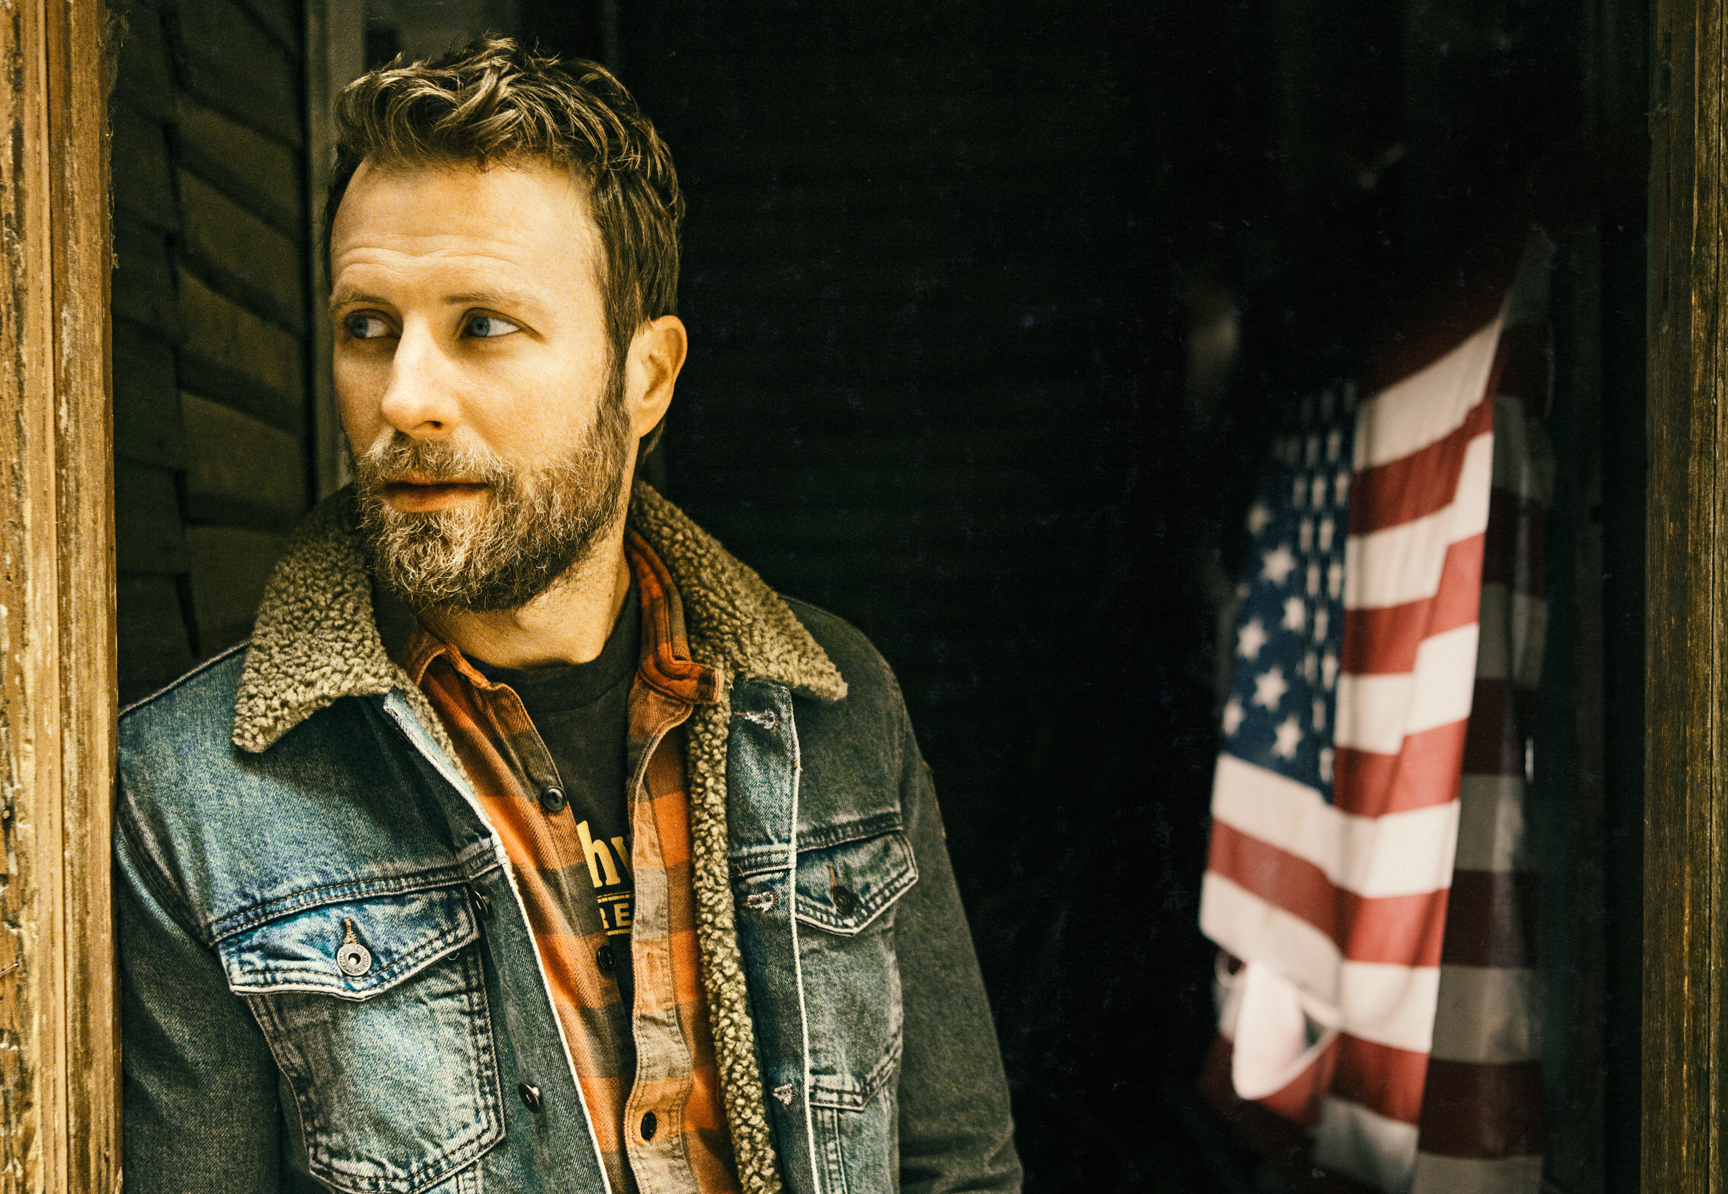 line dierks desert bentley launches clothing son pittsburgh